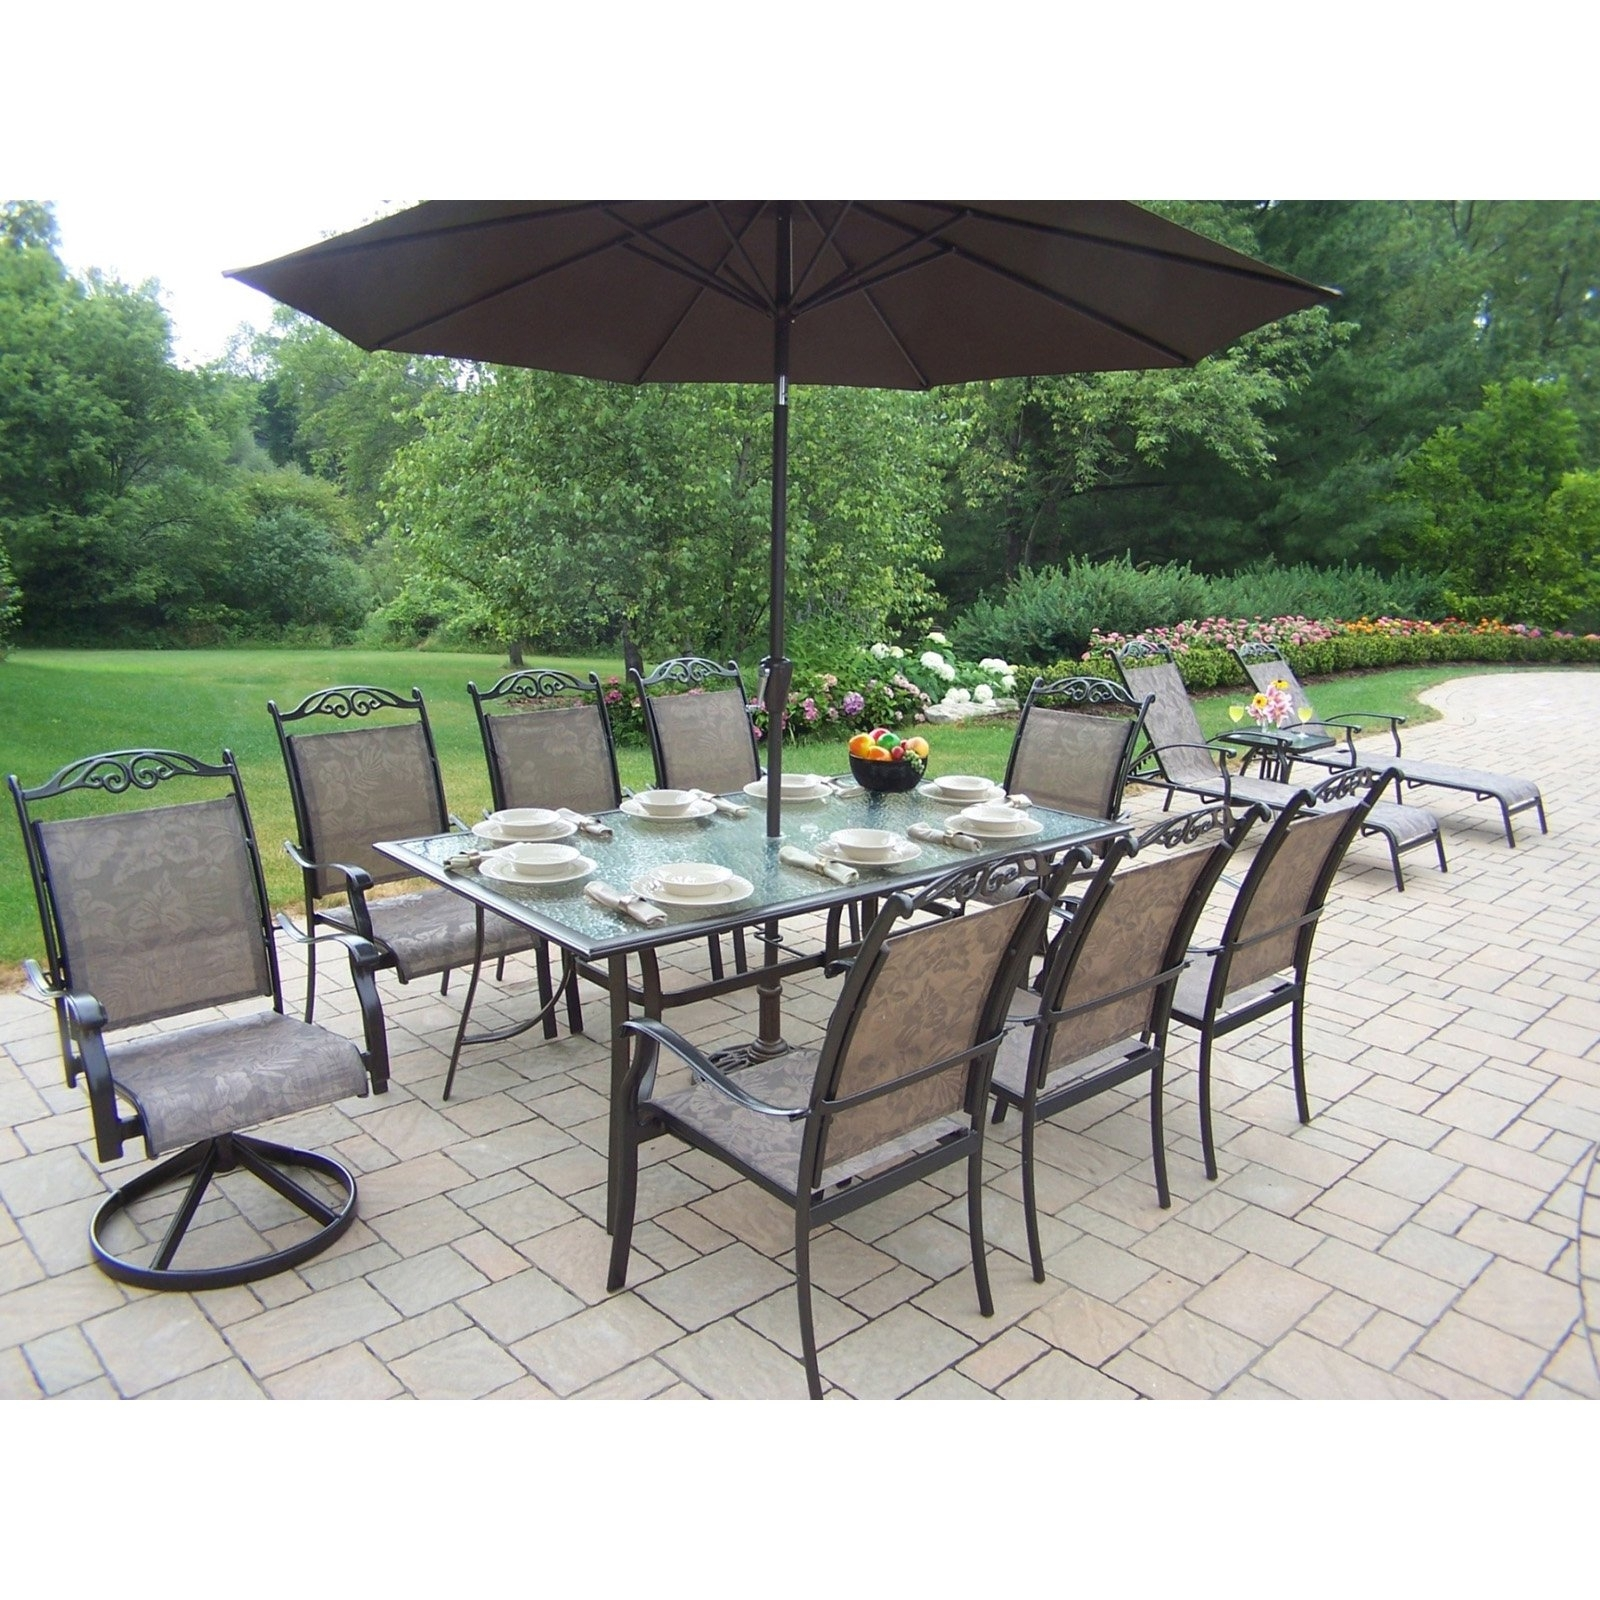 Most Recently Released Patio Tables With Umbrellas With Oakland Living Cascade Patio Dining Set With Umbrella And Stand (View 6 of 20)